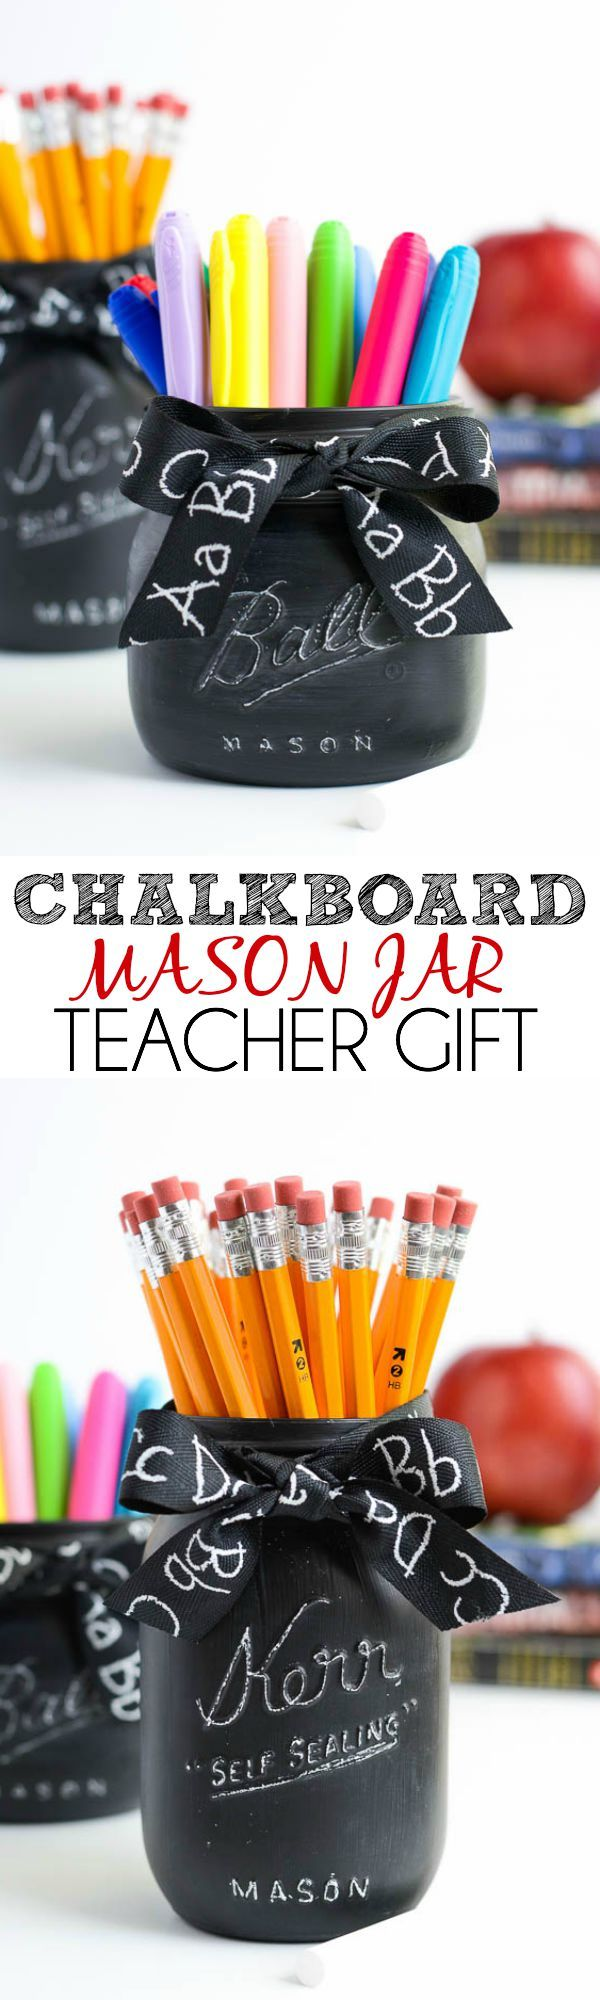 Chalkboard Mason Jar Teacher Gift